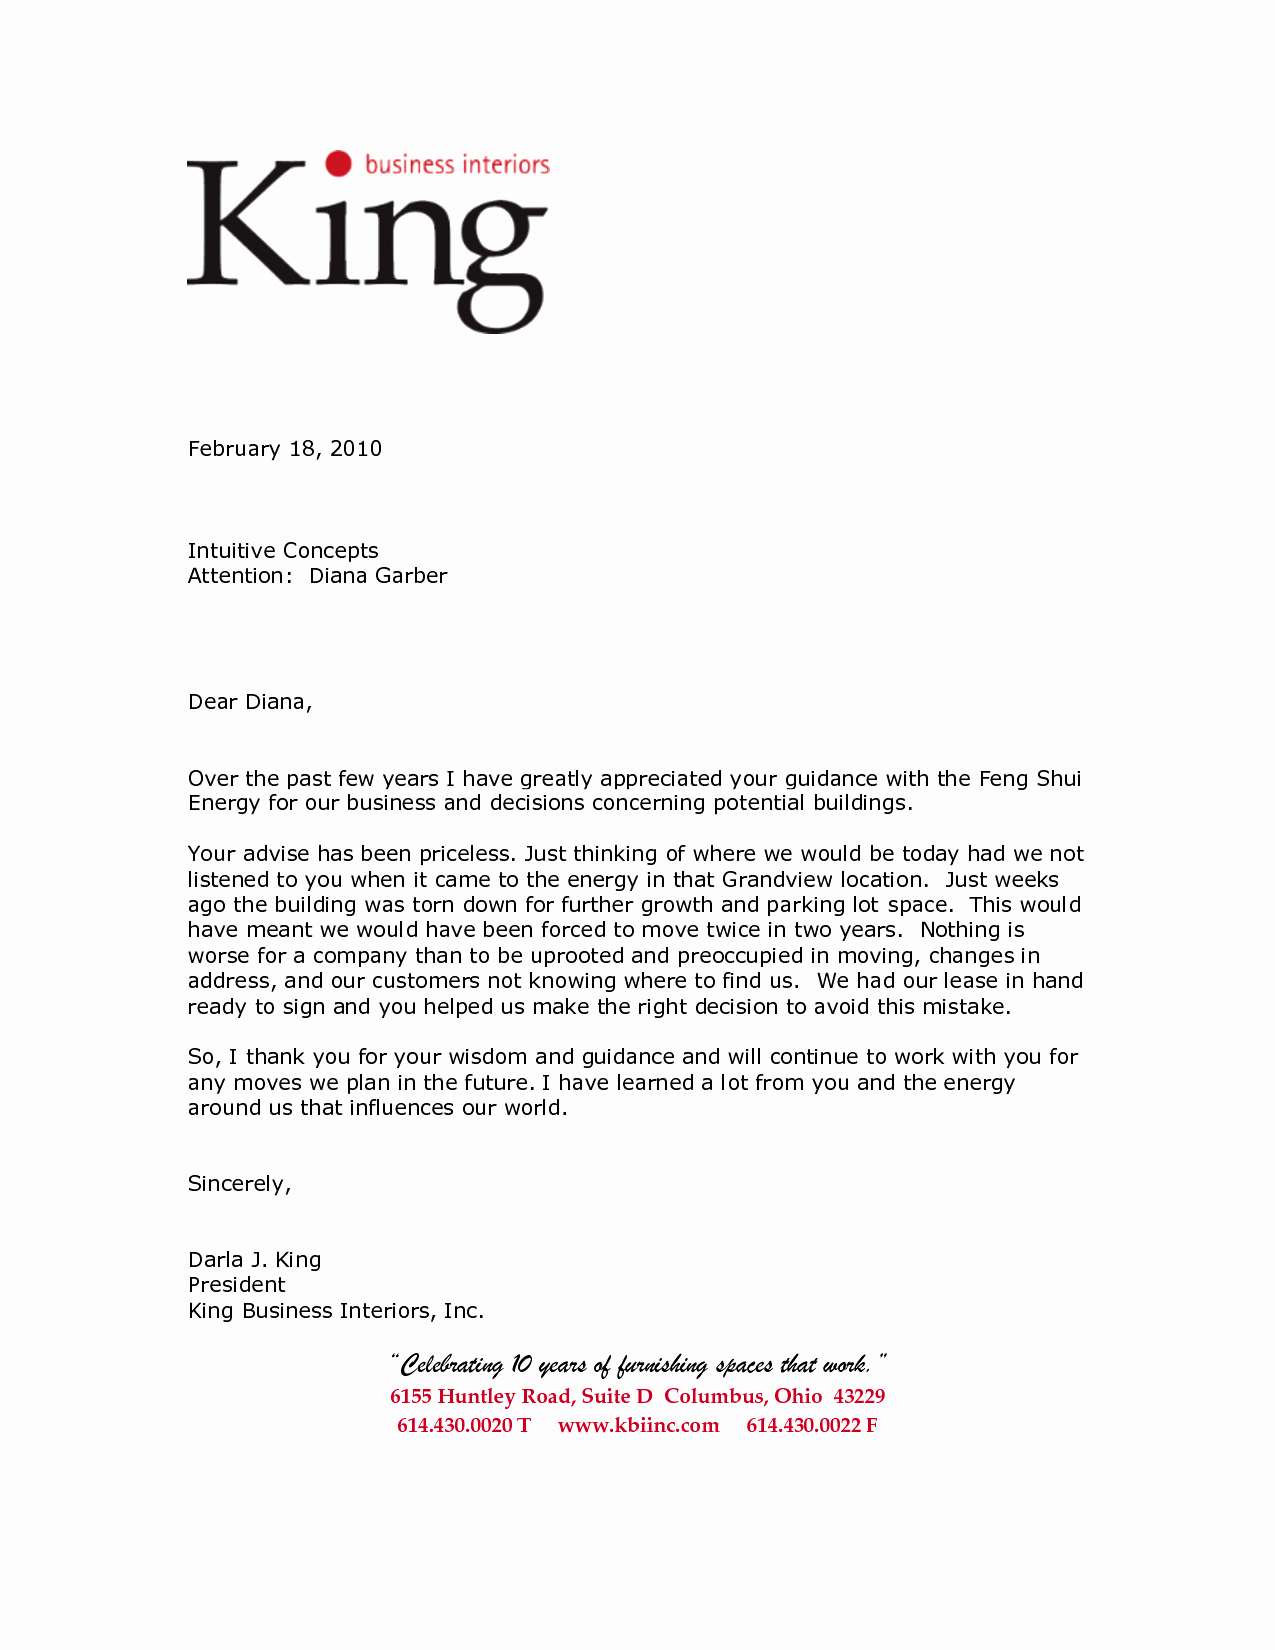 Formal Business Letter Template Word Awesome Business Reference Letter Template Mughals